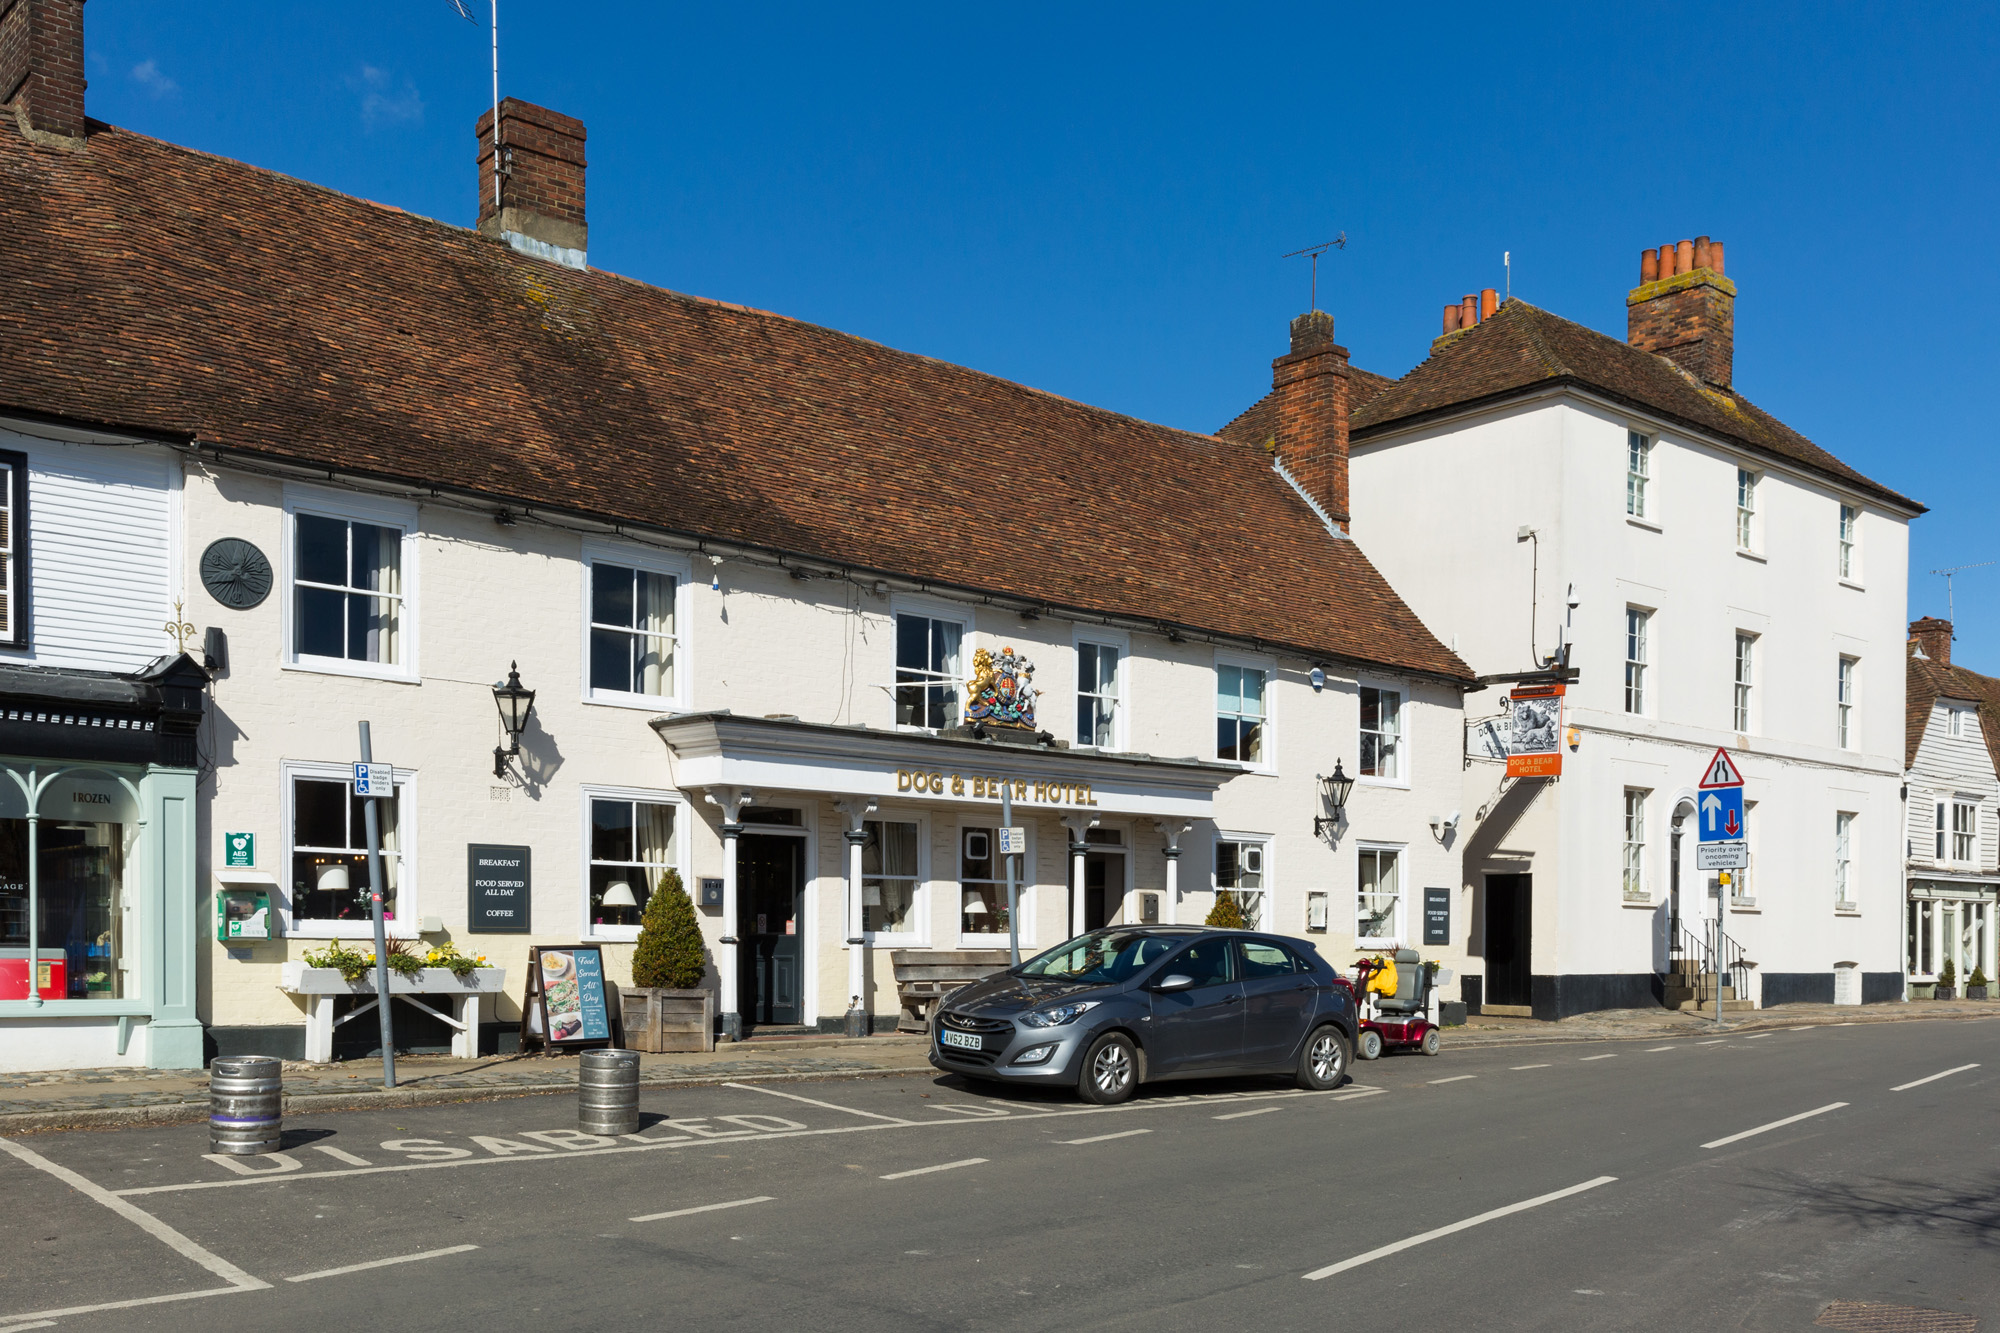 Dog & Bear Hotel, Lenham